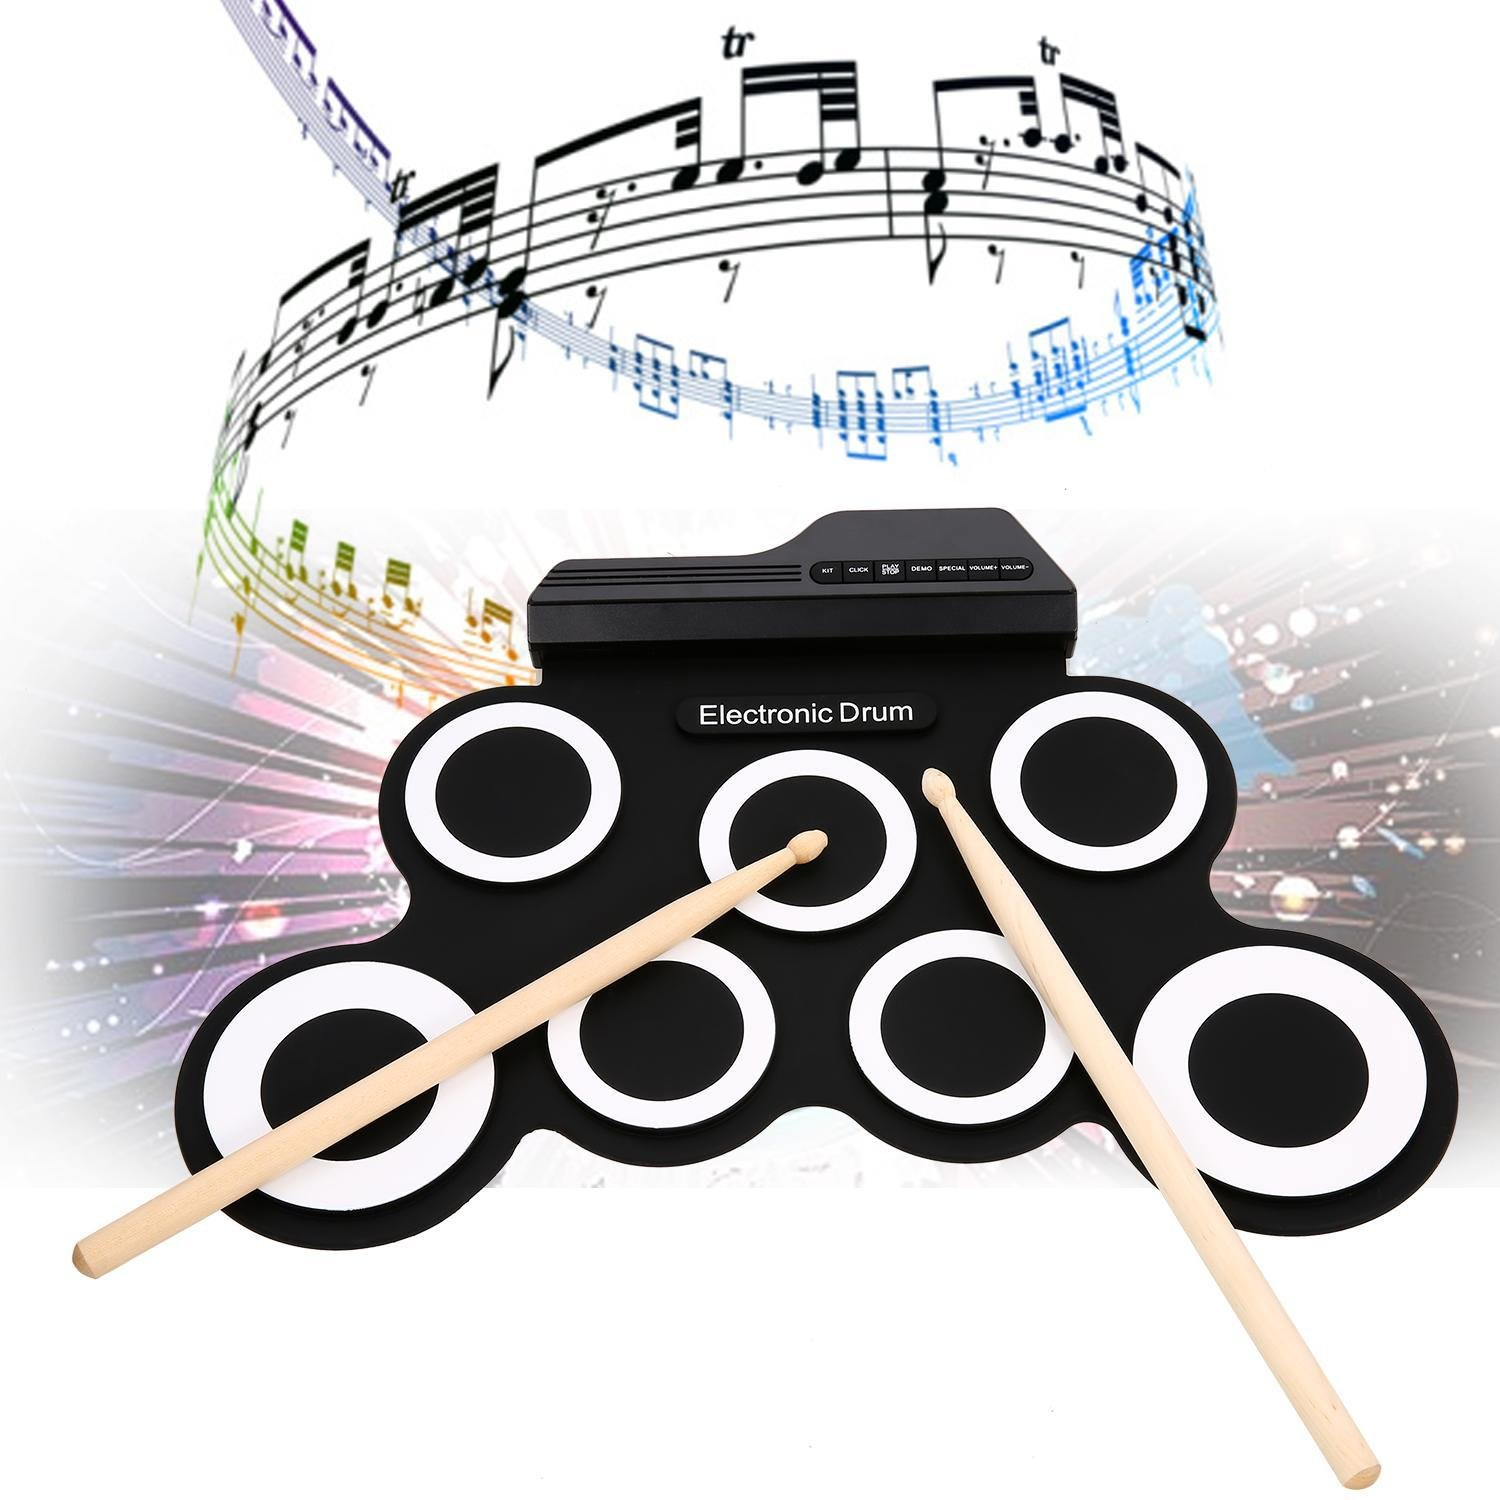 Hindom Electronic Drum Set for Kids, Electronic Drum Pad with Roll-Up with Built-in Speakers Foot Pedals Drumsticks, US STOCK by Hindom